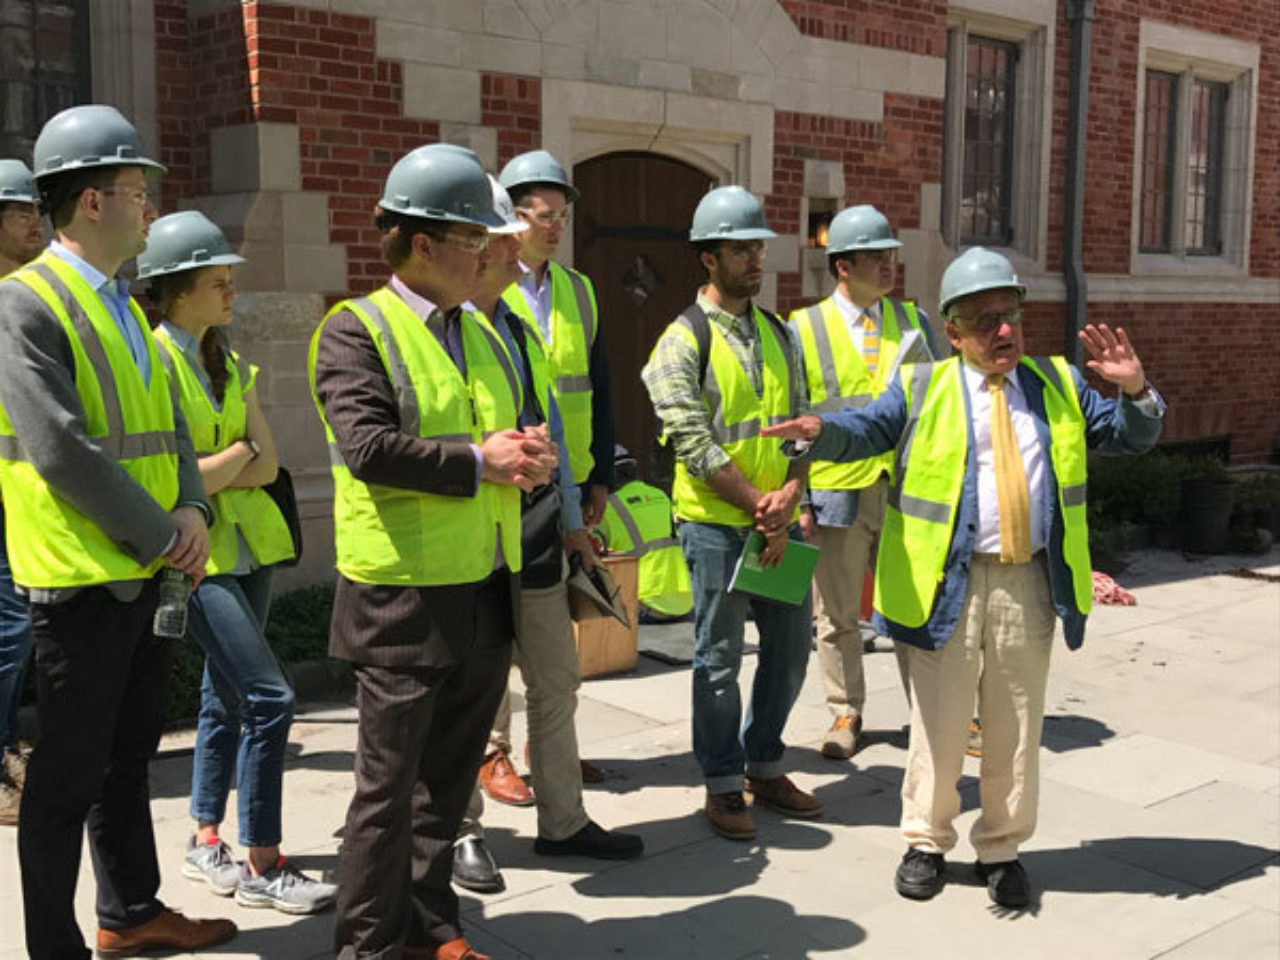 Robert A.M. Stern leads the ICAA's tour group through Yale's new residential colleges